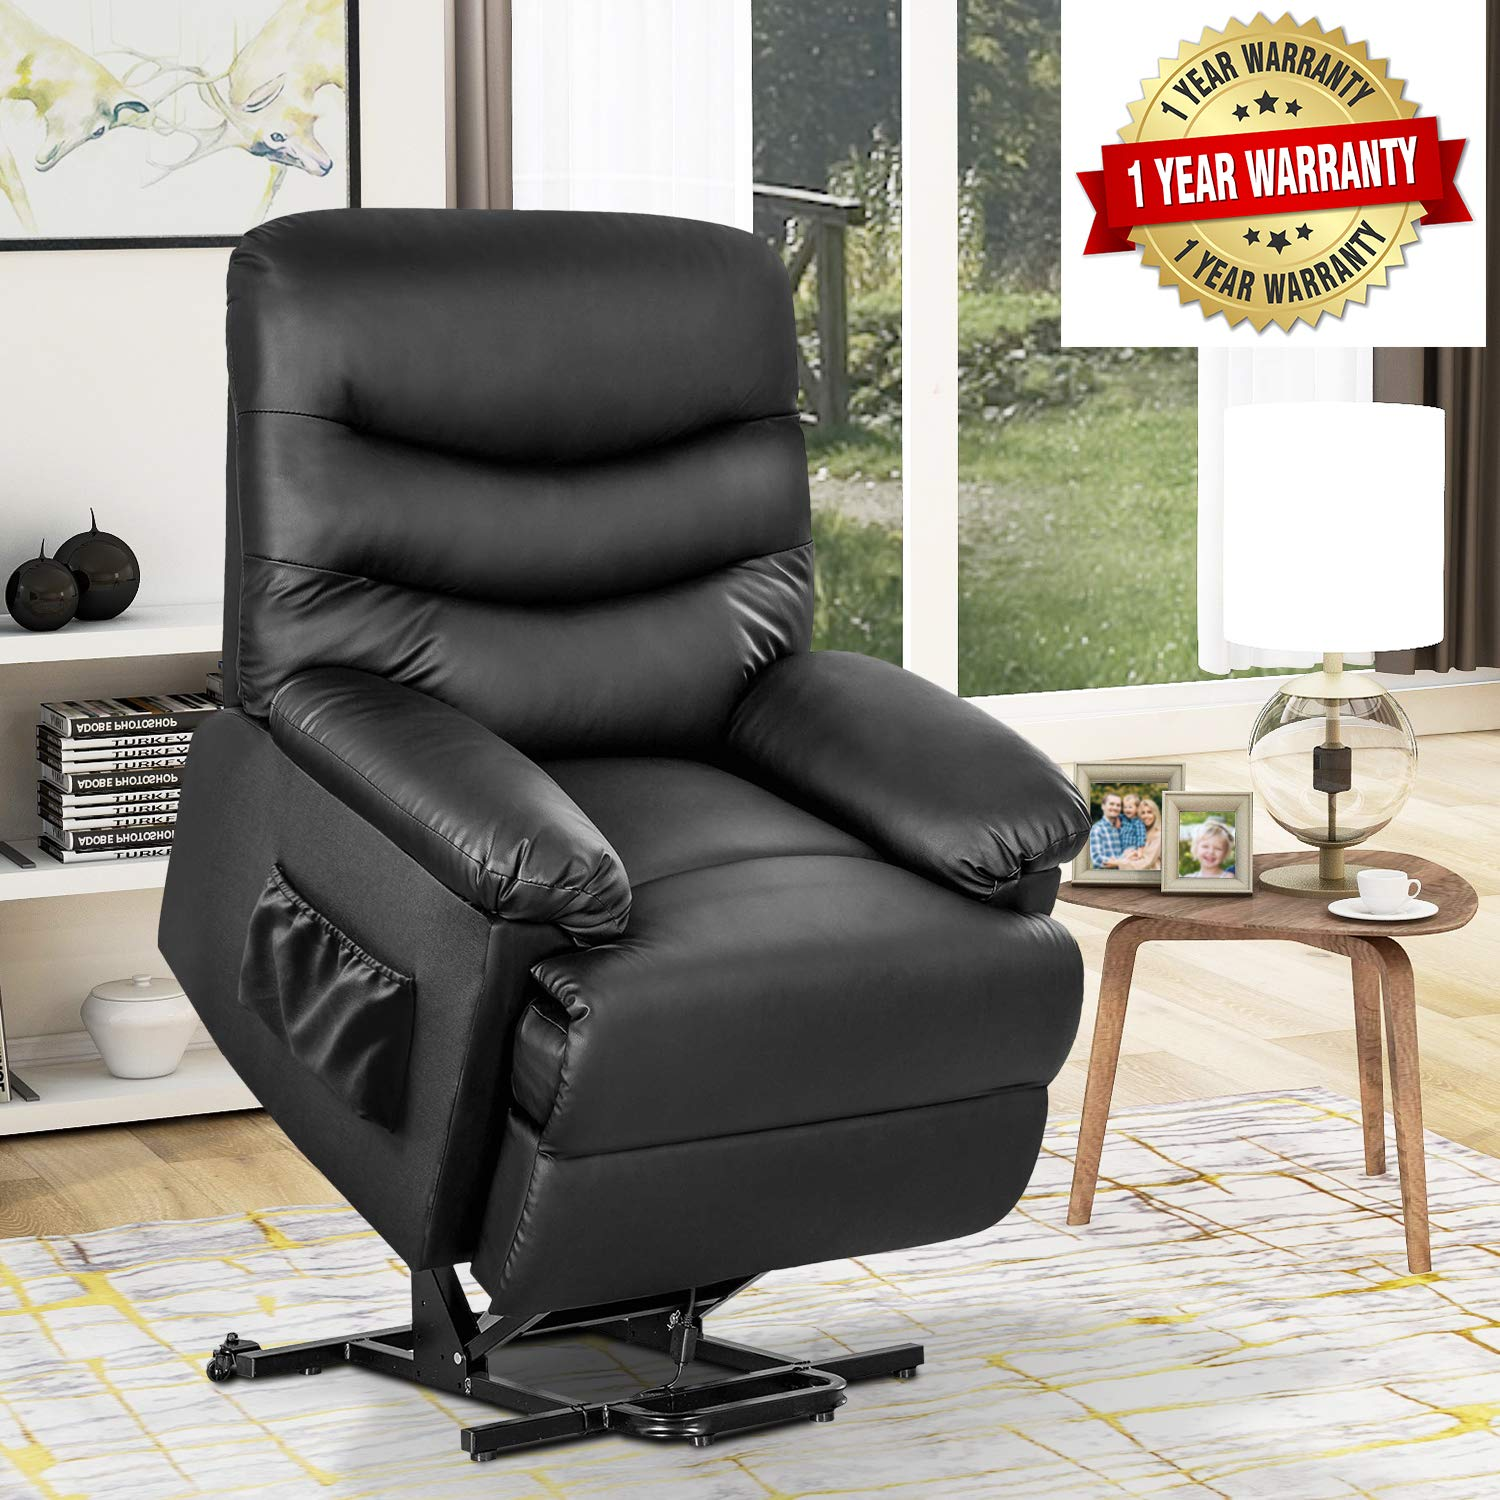 Recliner Chair Lift Chair For Elderly Electric Recliner Chair With Remote Control For Living Room